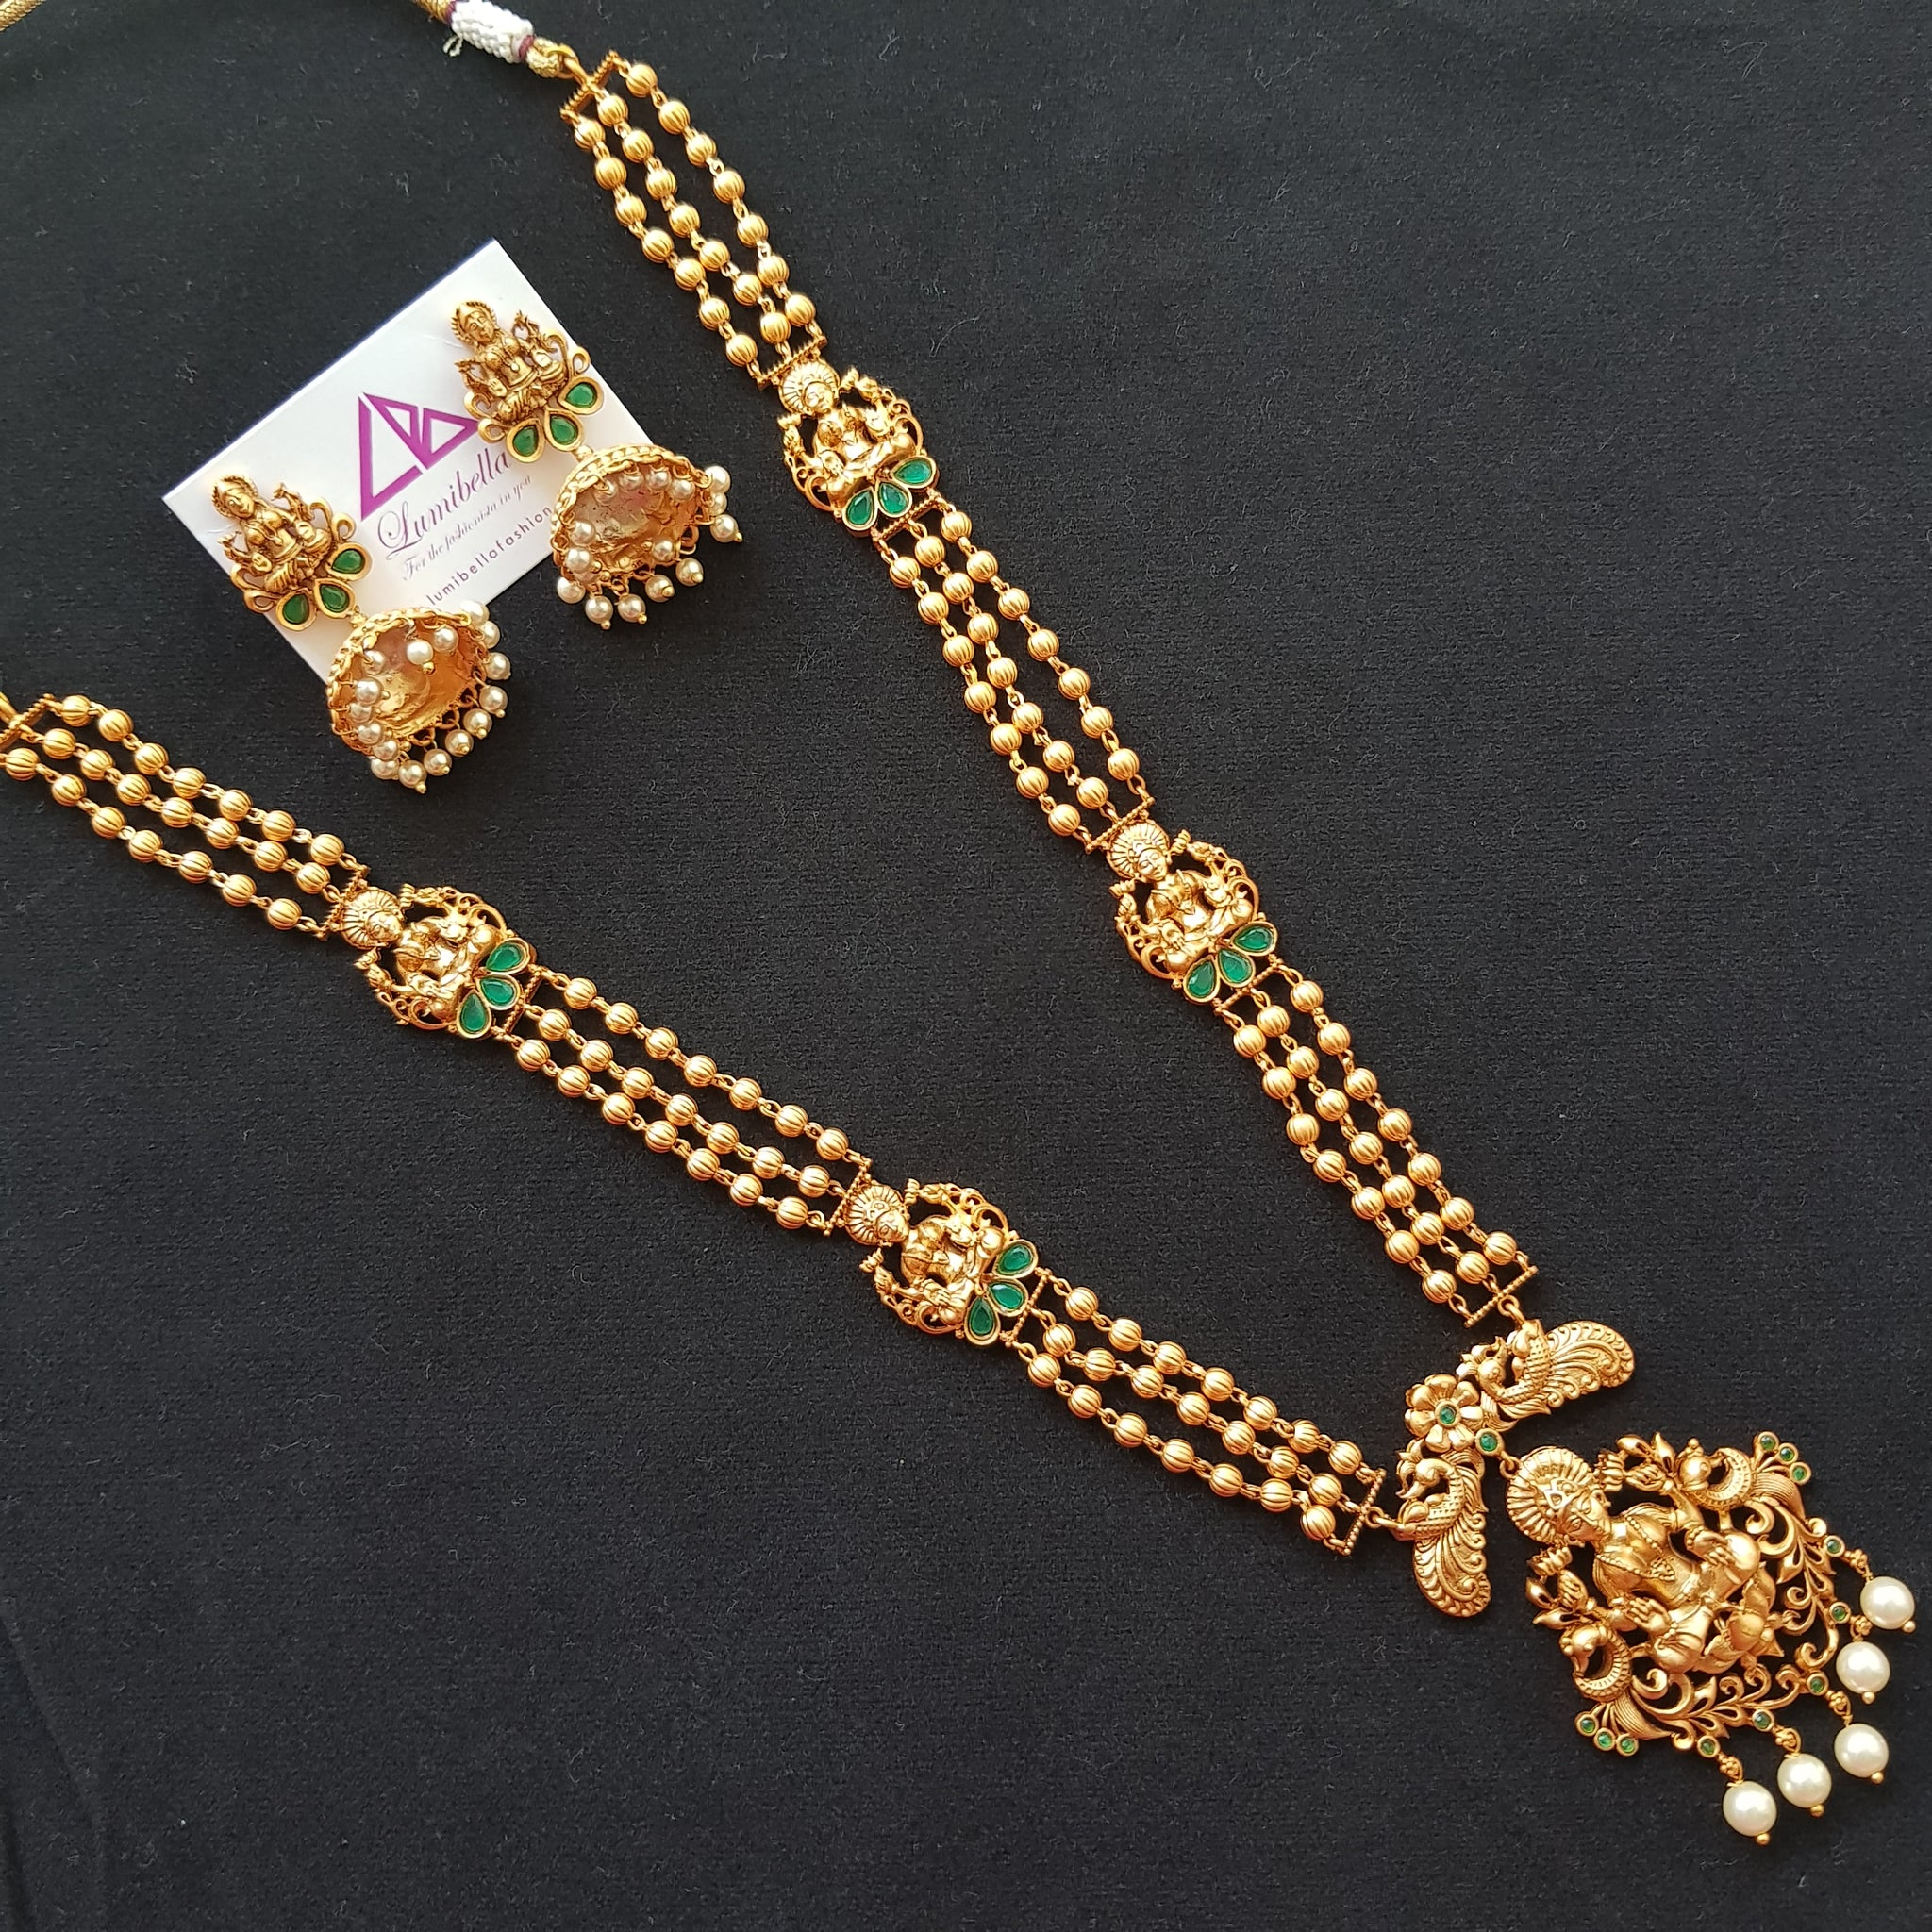 Temple style long Neckset with Hindu god